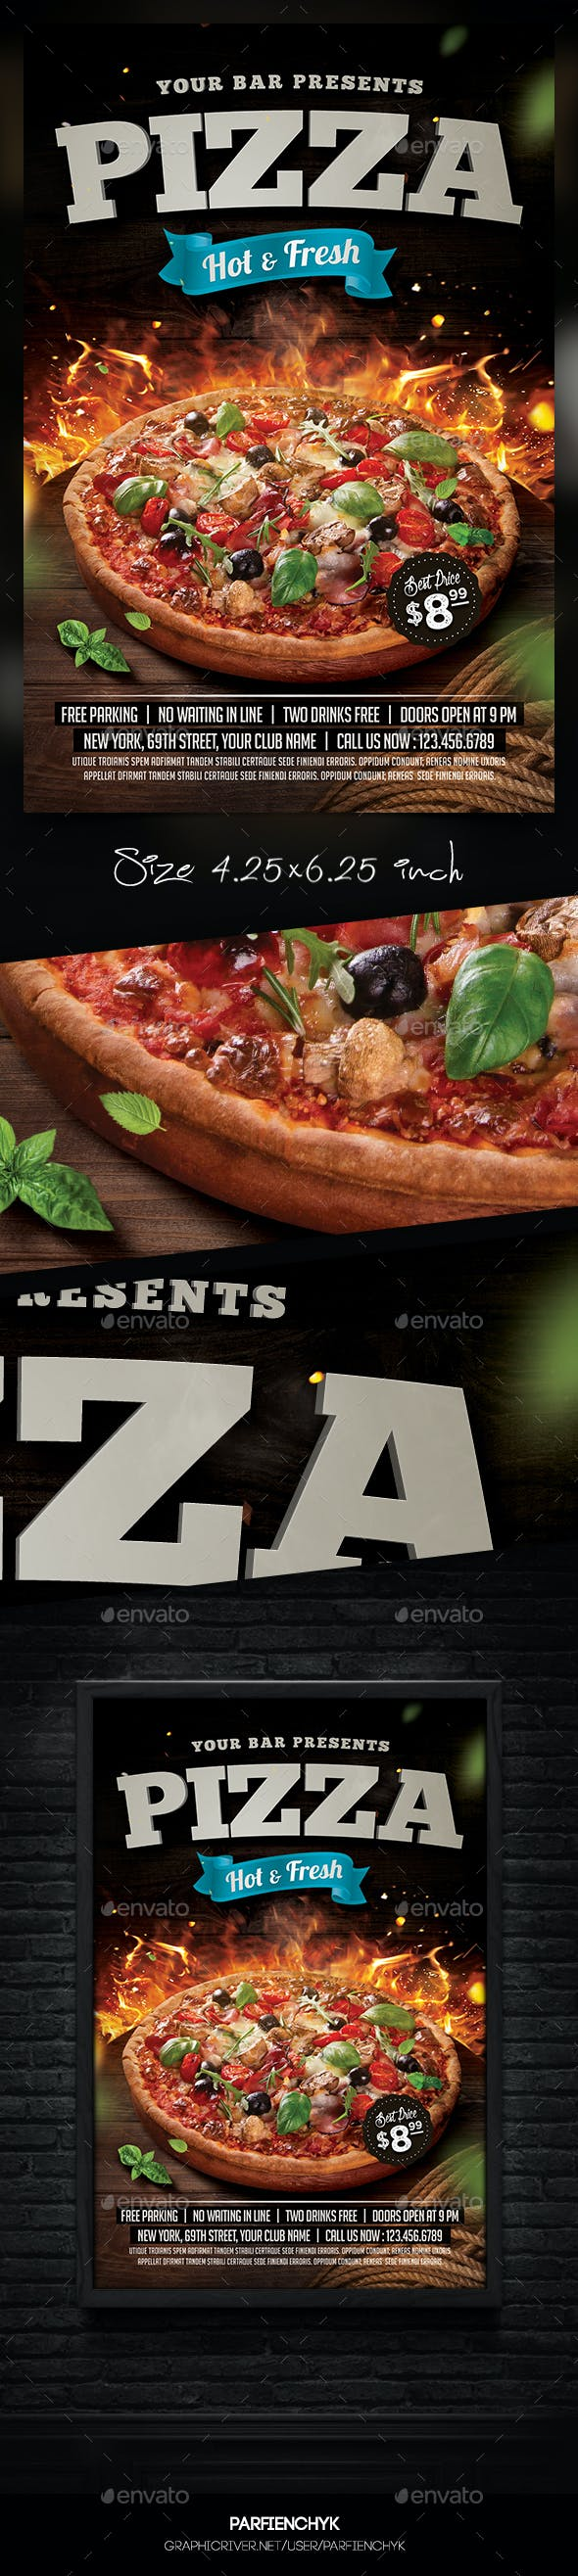 pizza flyer template by parfienchyk graphicriver